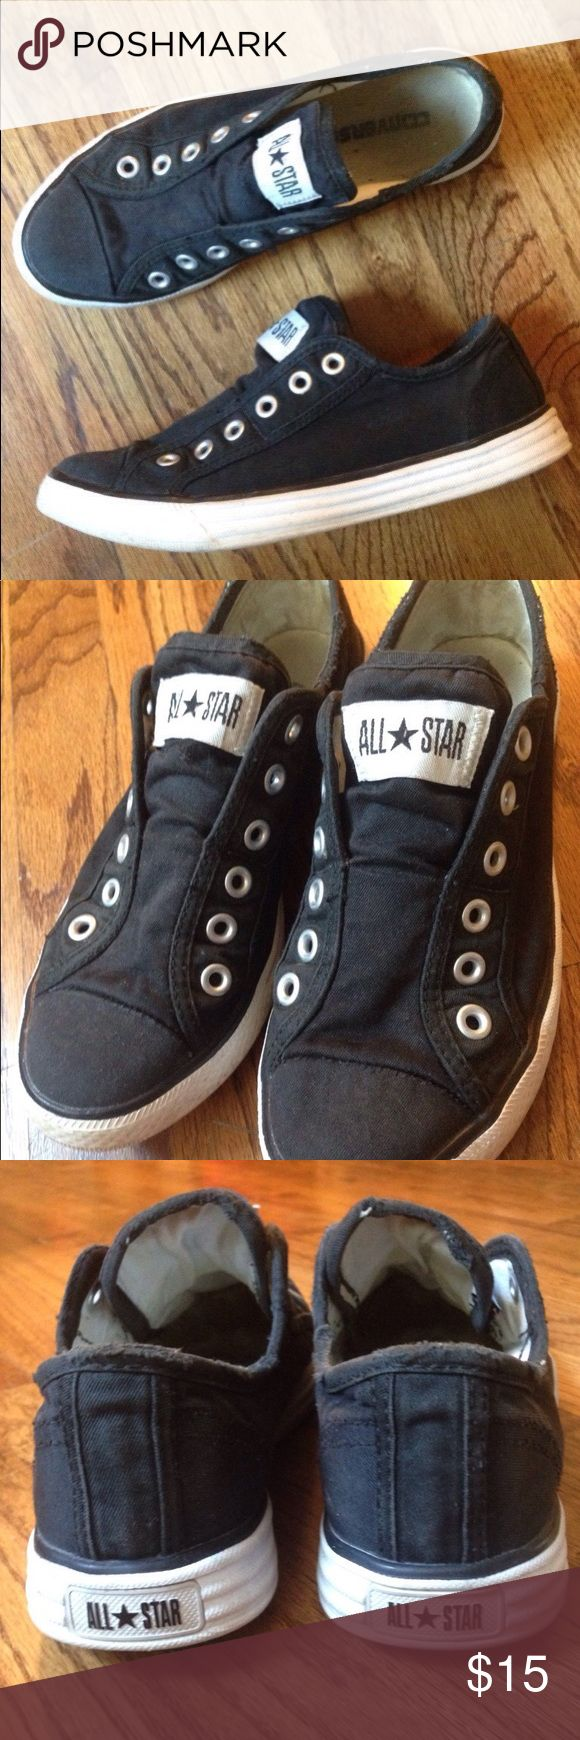 Converse Slip On Sneakers Converse black slip on sneakers - no laces needed! Worn but good condition. Size 8. Converse Shoes Sneakers